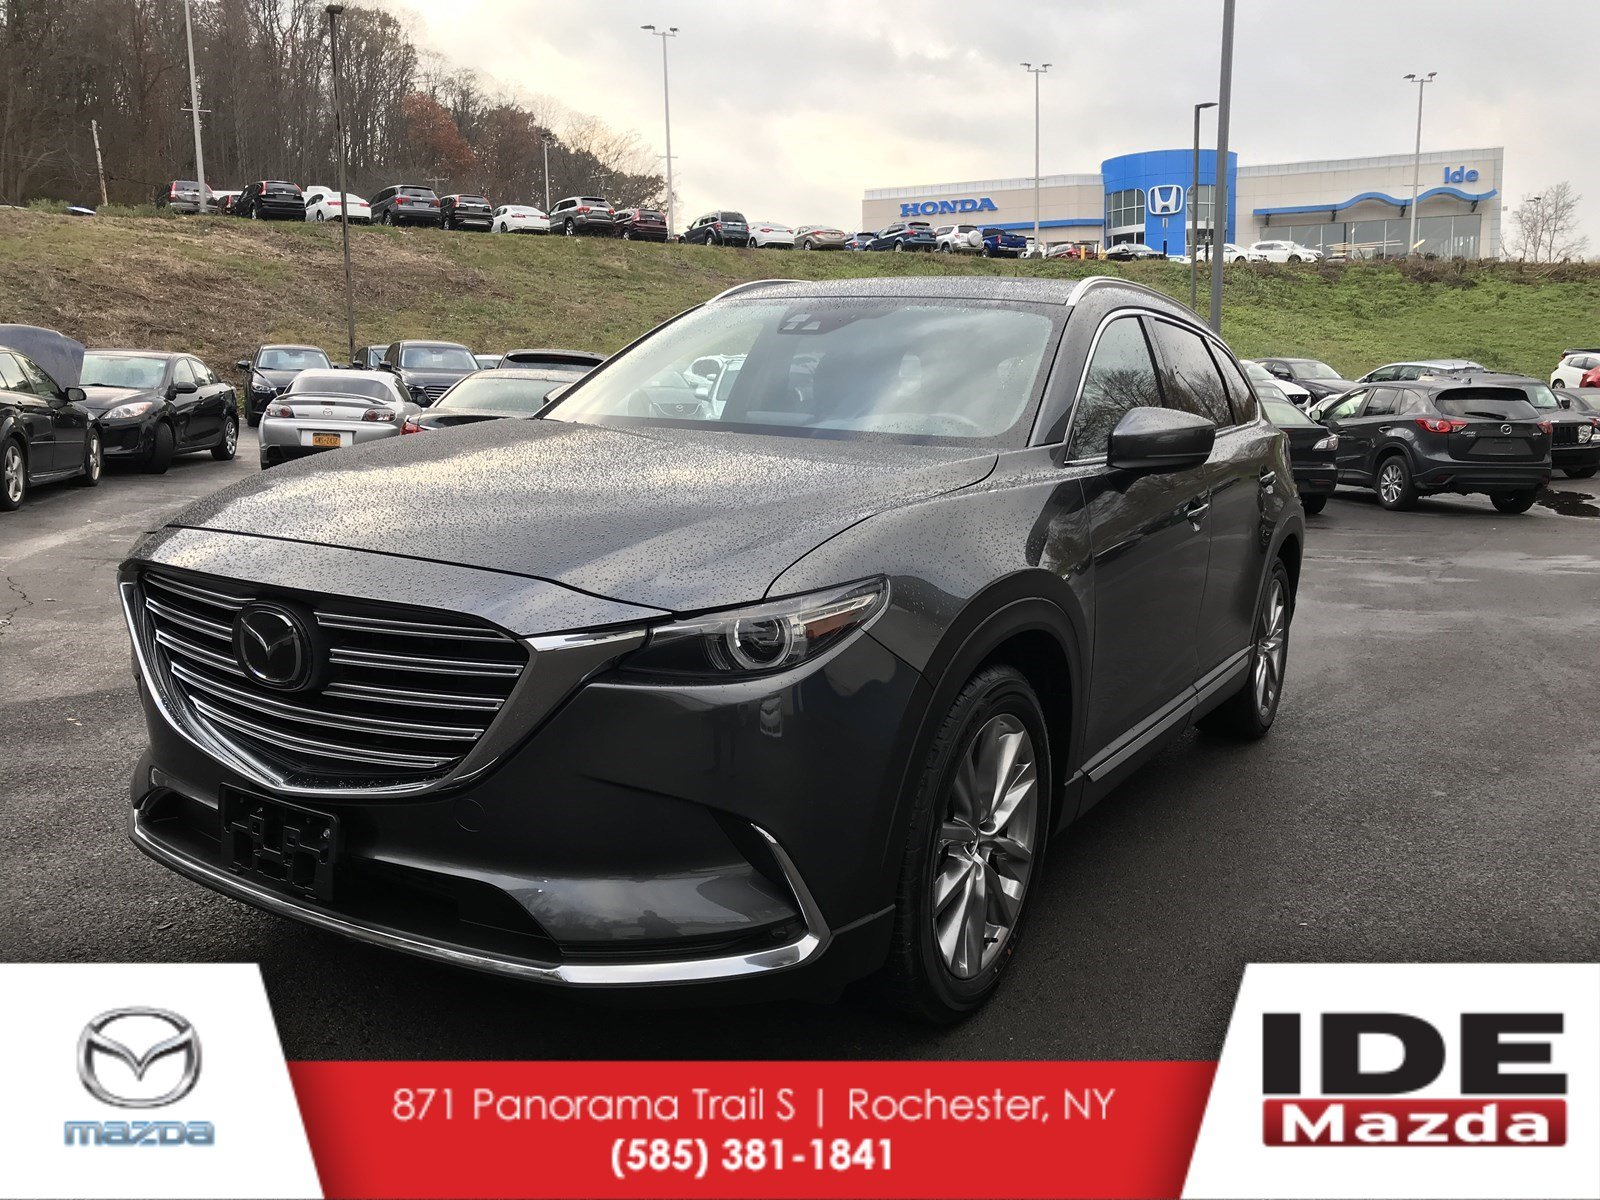 i sport rochester com mazda sale for ny used cars in shopping